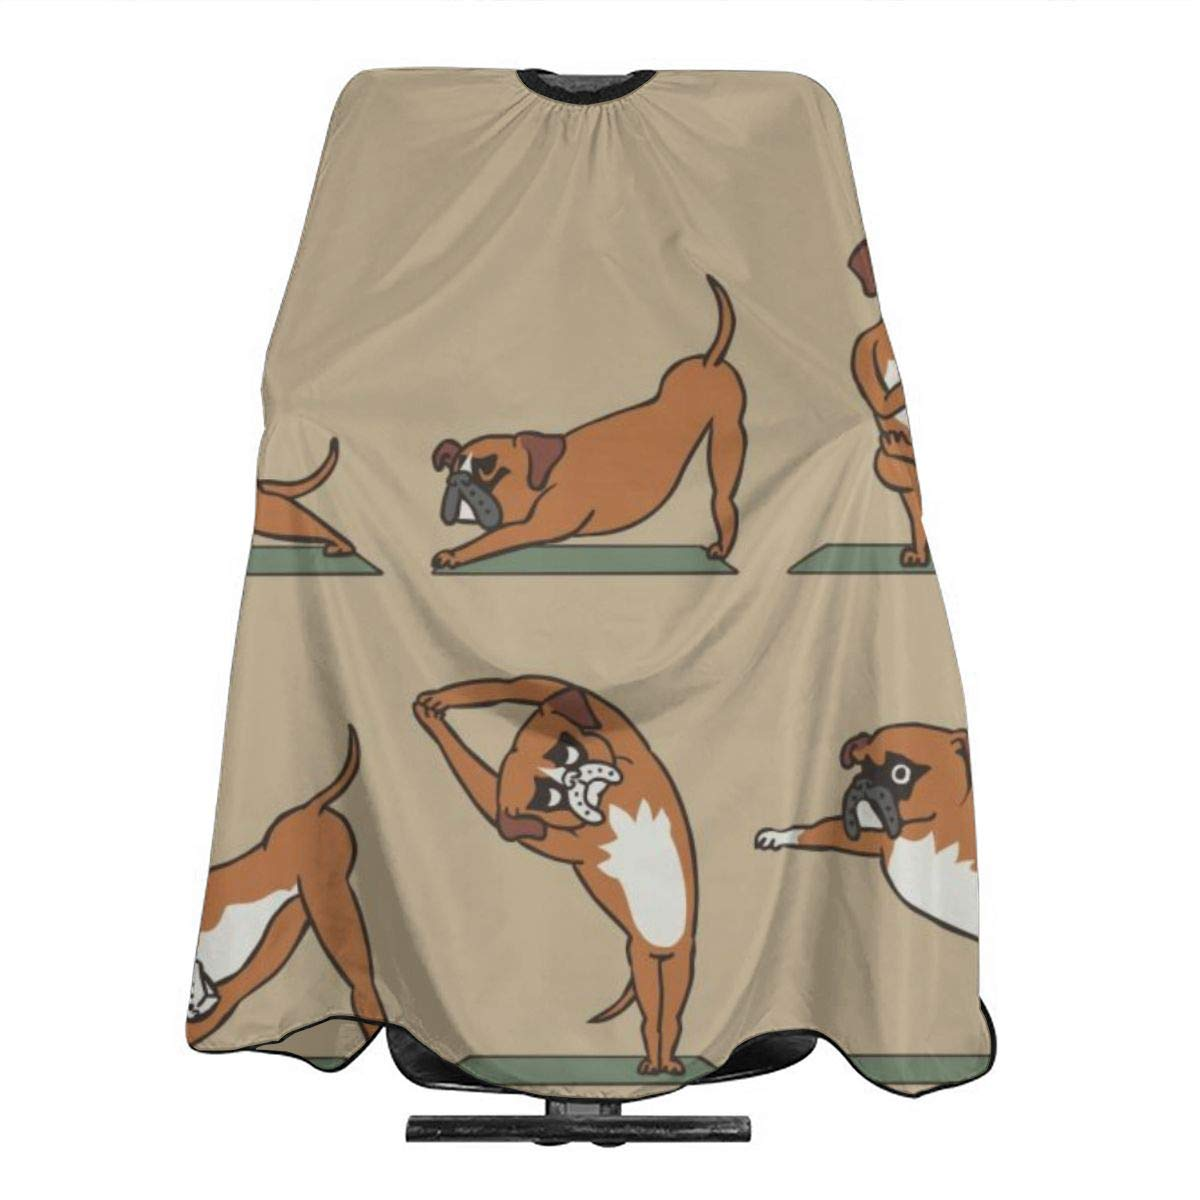 Professional Barber Cape Salon Hair Styling Cutting Haircut Aprons Boxer Yoga Dog Puppy Capes For Proof Hairdresser Coloring Perming Shampoo Chemical 55